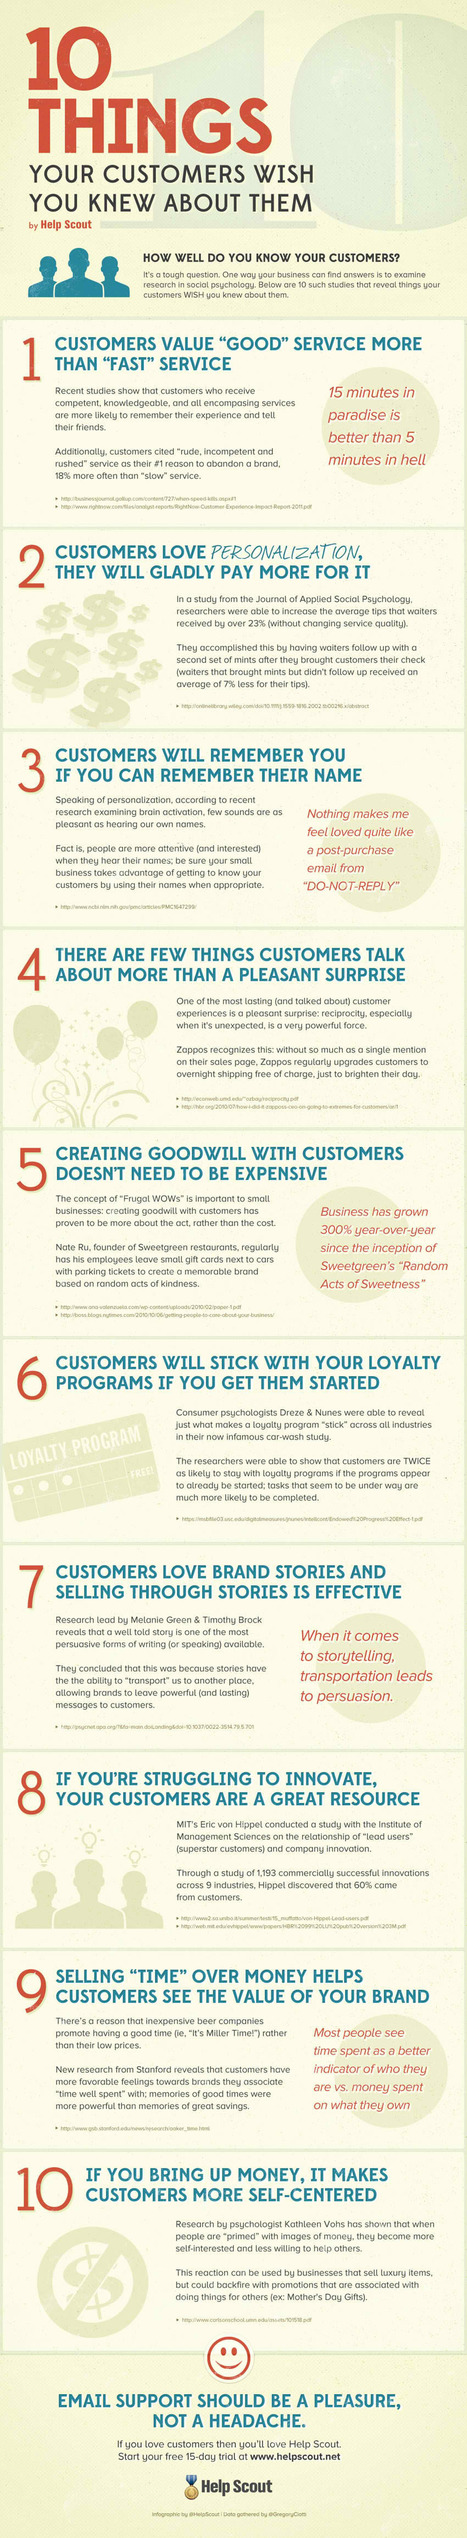 10 Things You Can Learn From Your Customers [Infographic]| BitRebels | Social Media Recommendations | Scoop.it